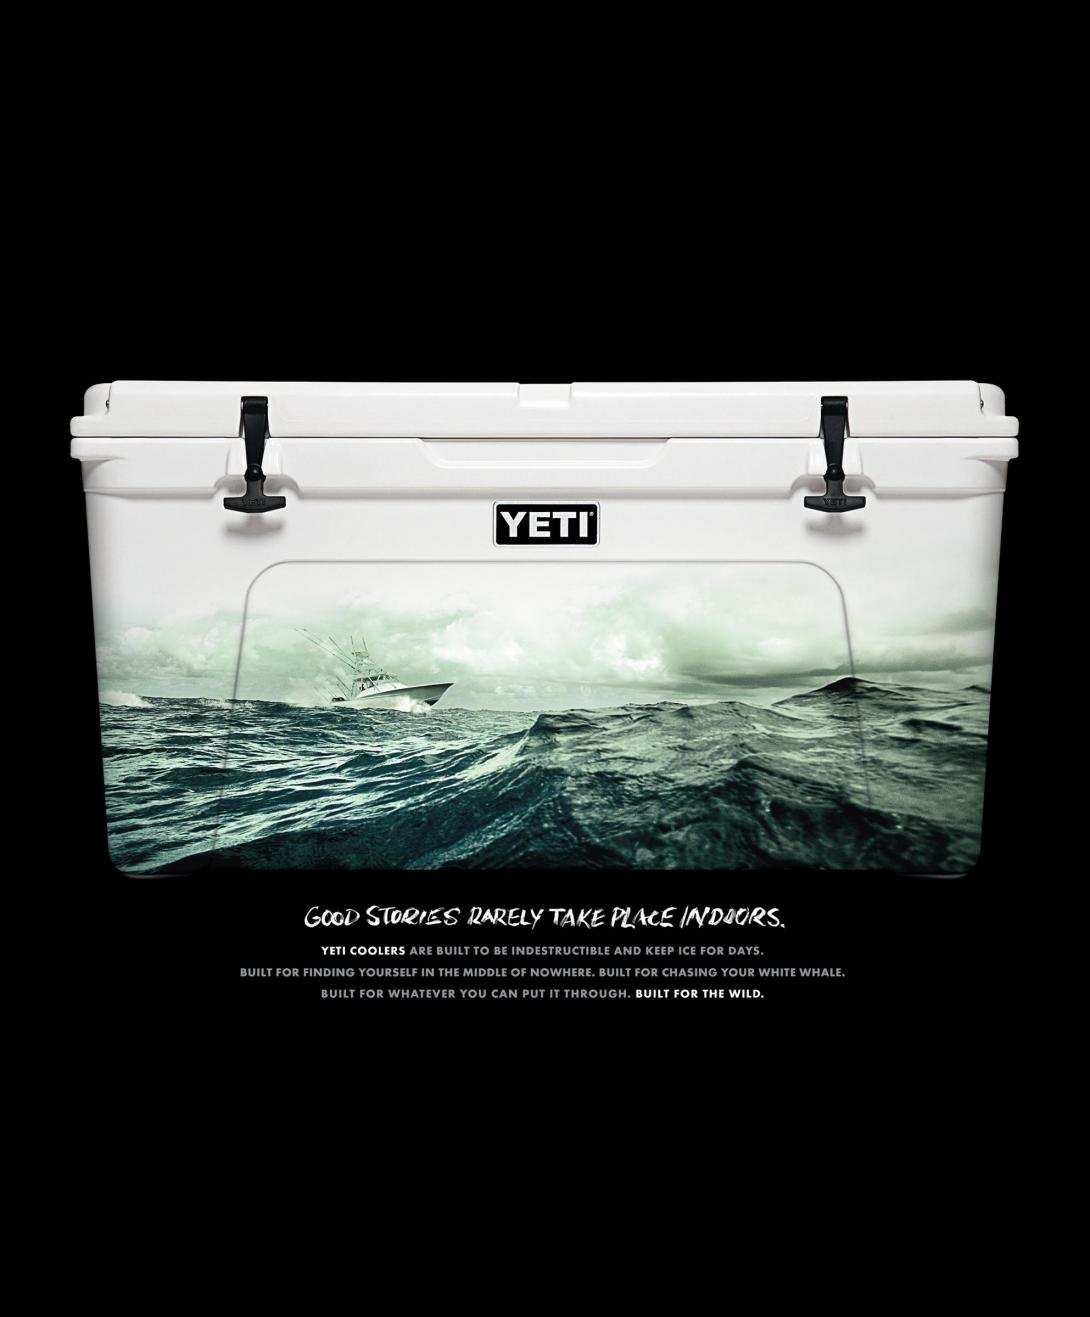 yeti_coolers_print-offshore_aotw